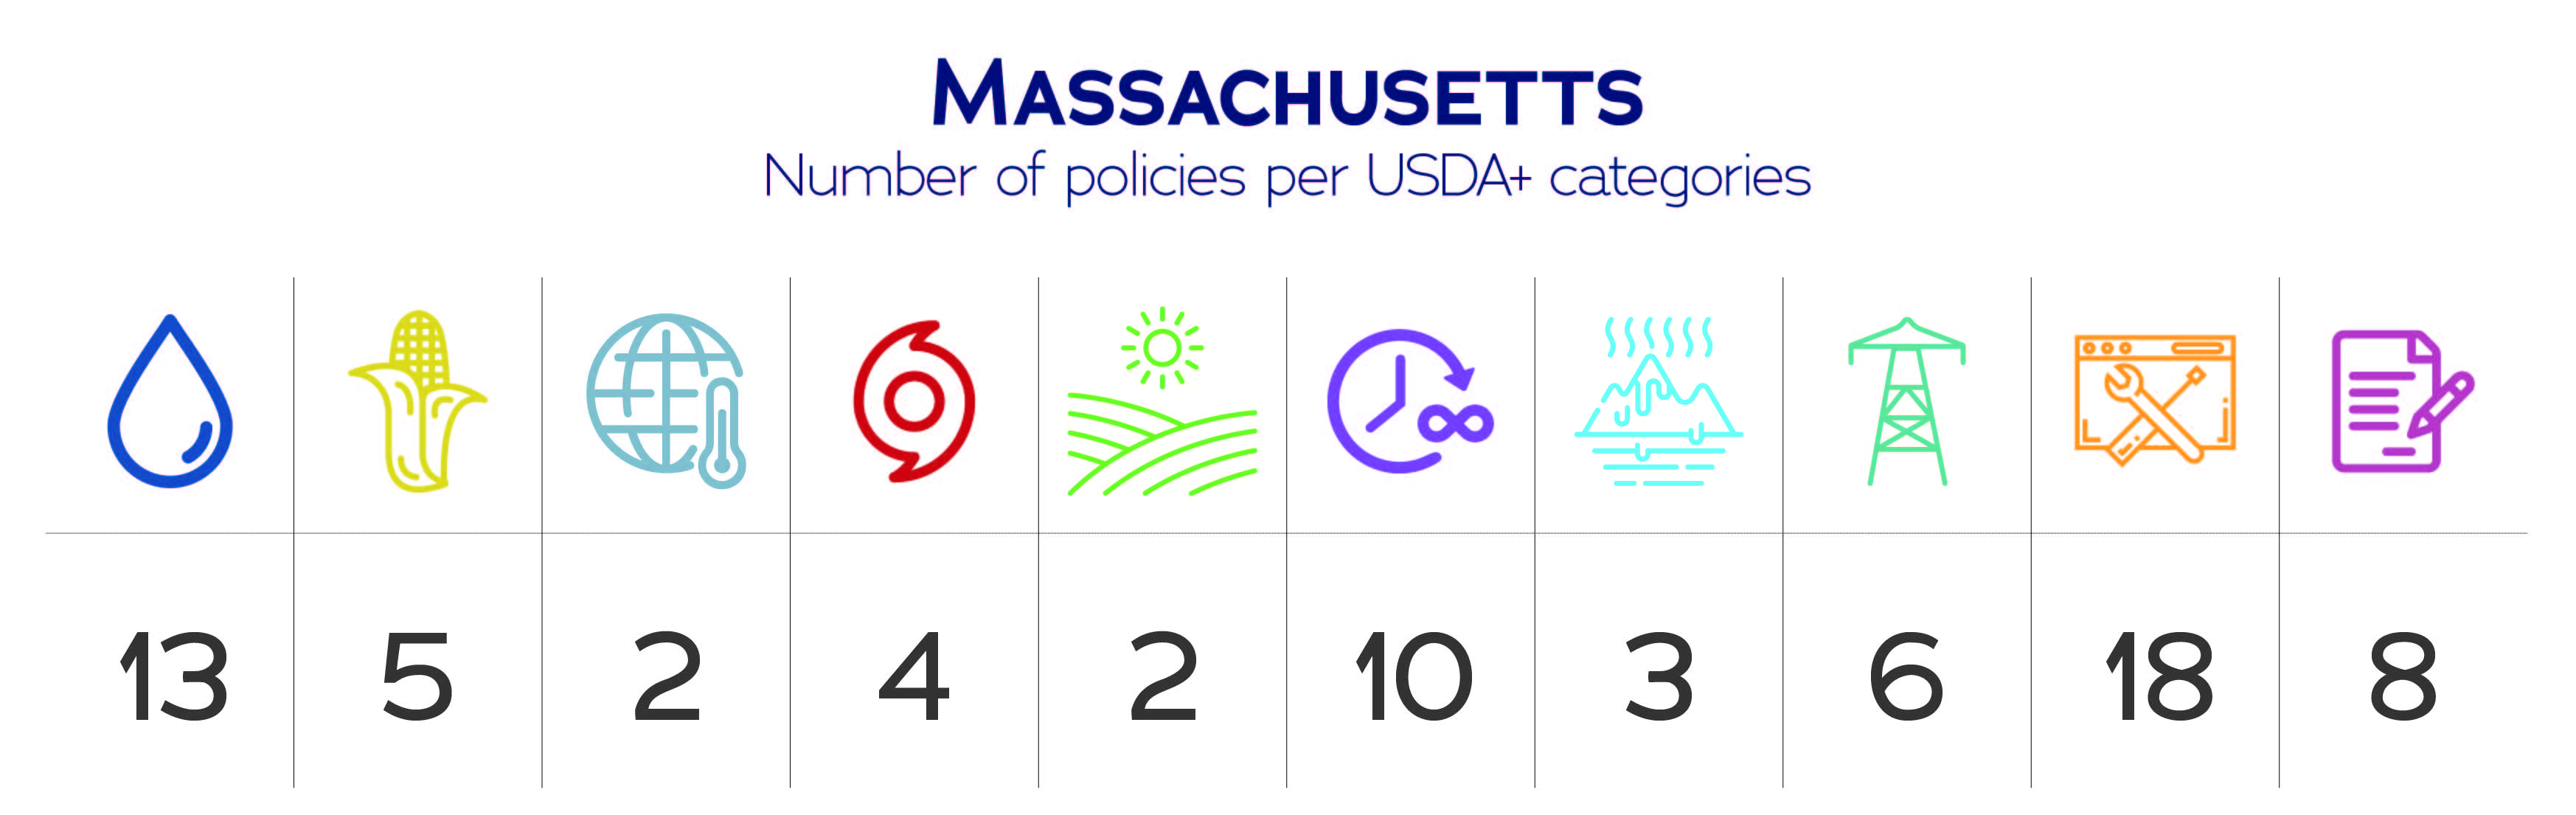 Massachusetts USDA+ category data